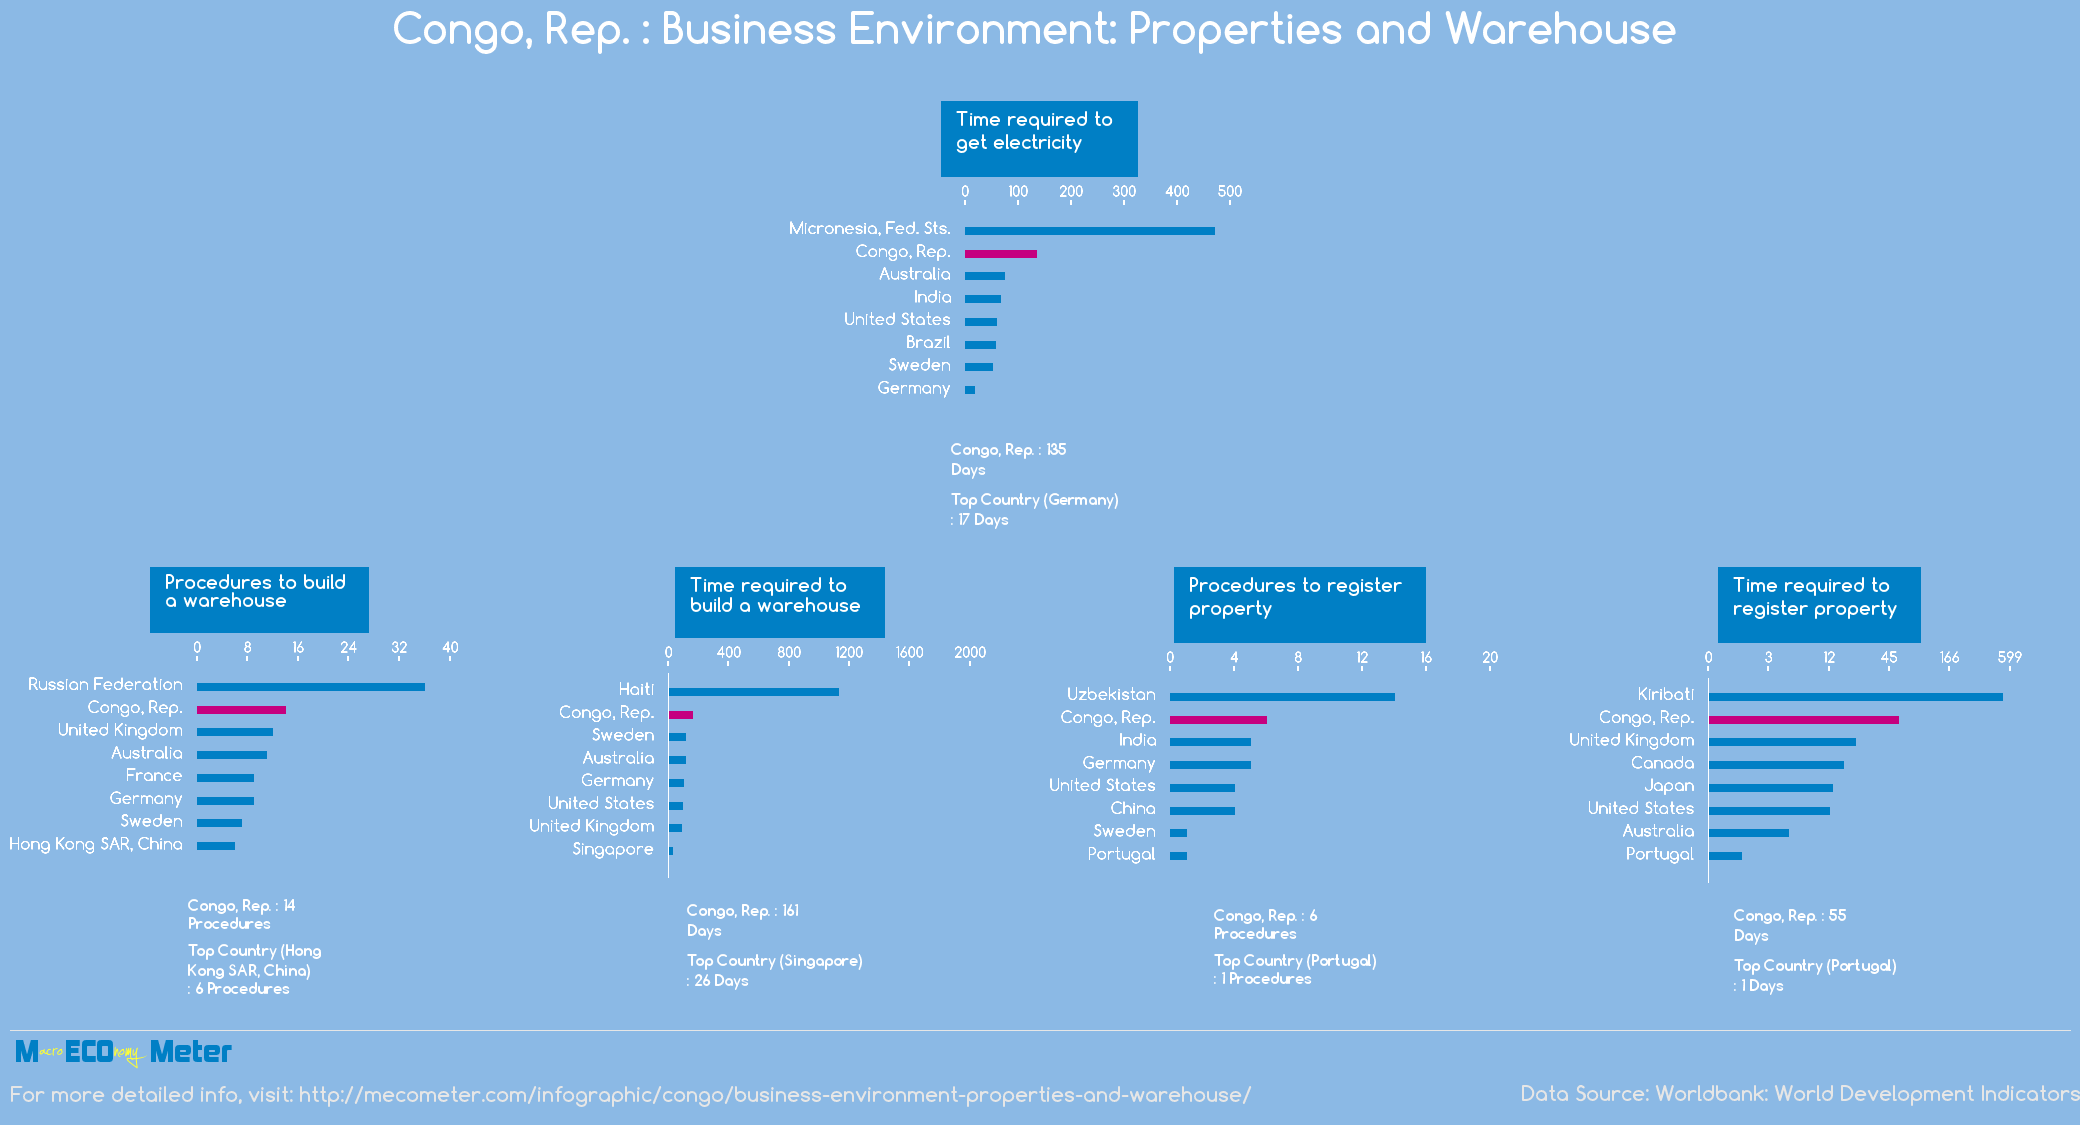 Congo, Rep. : Business Environment: Properties and Warehouse